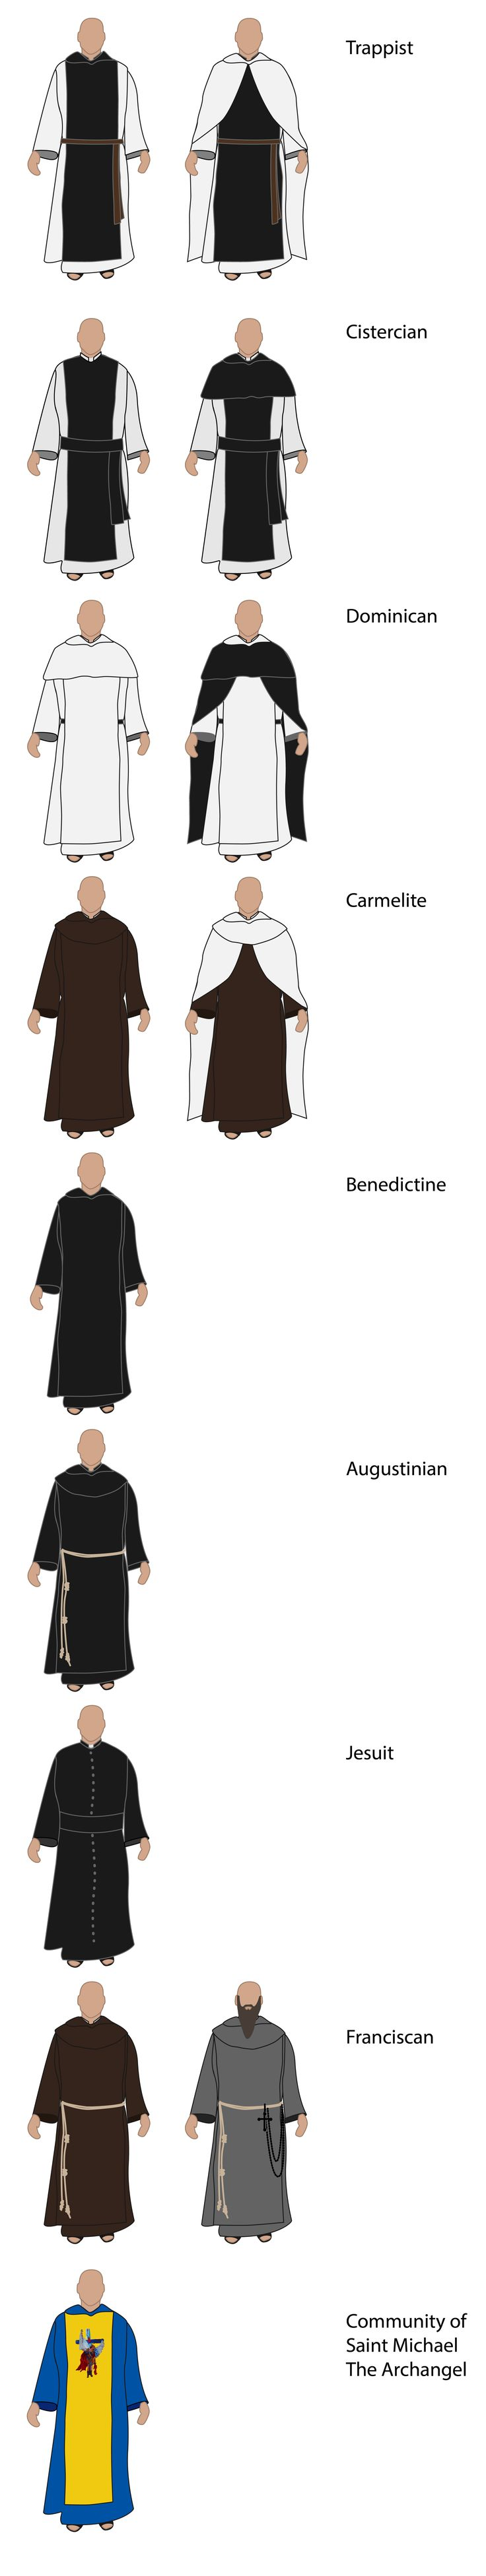 Identifying Catholic Monks by their Habit.